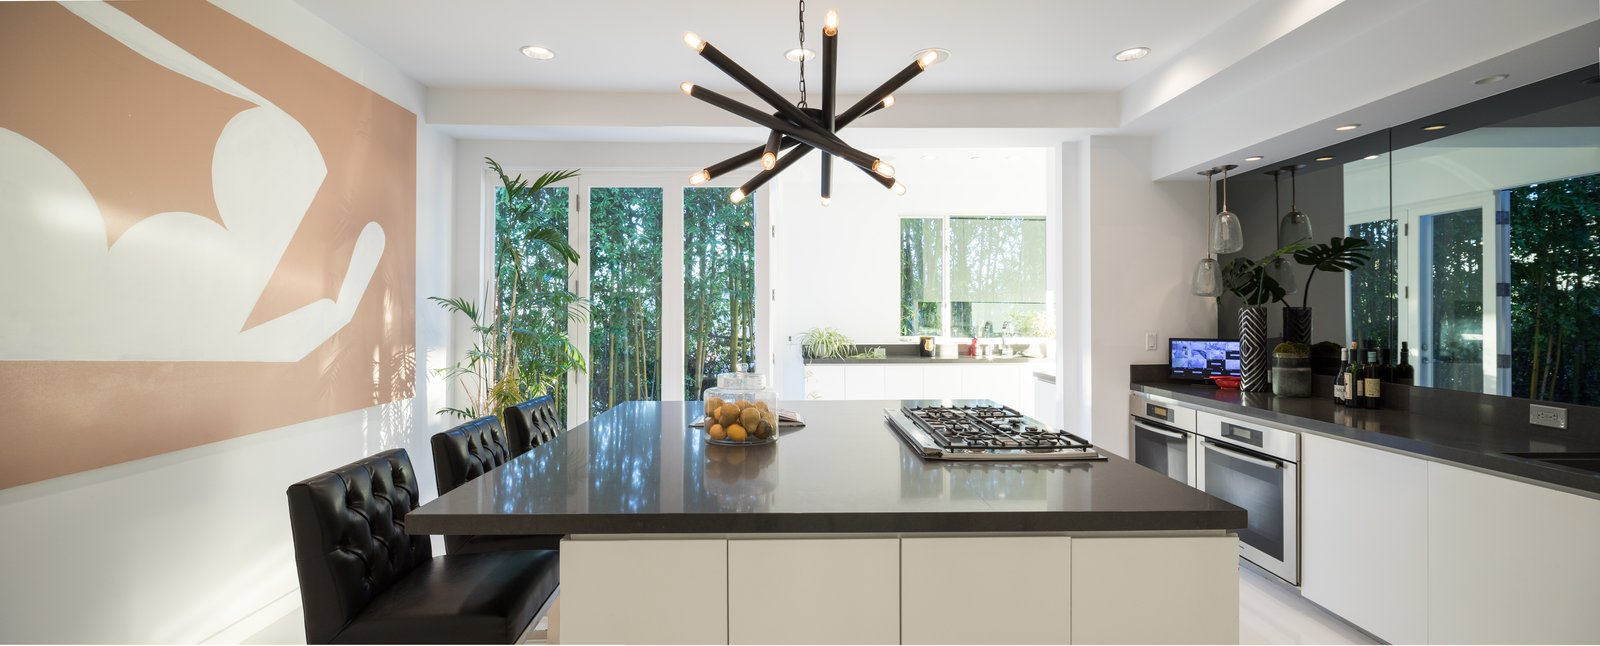 Harry Styles Los Angeles home kitchen